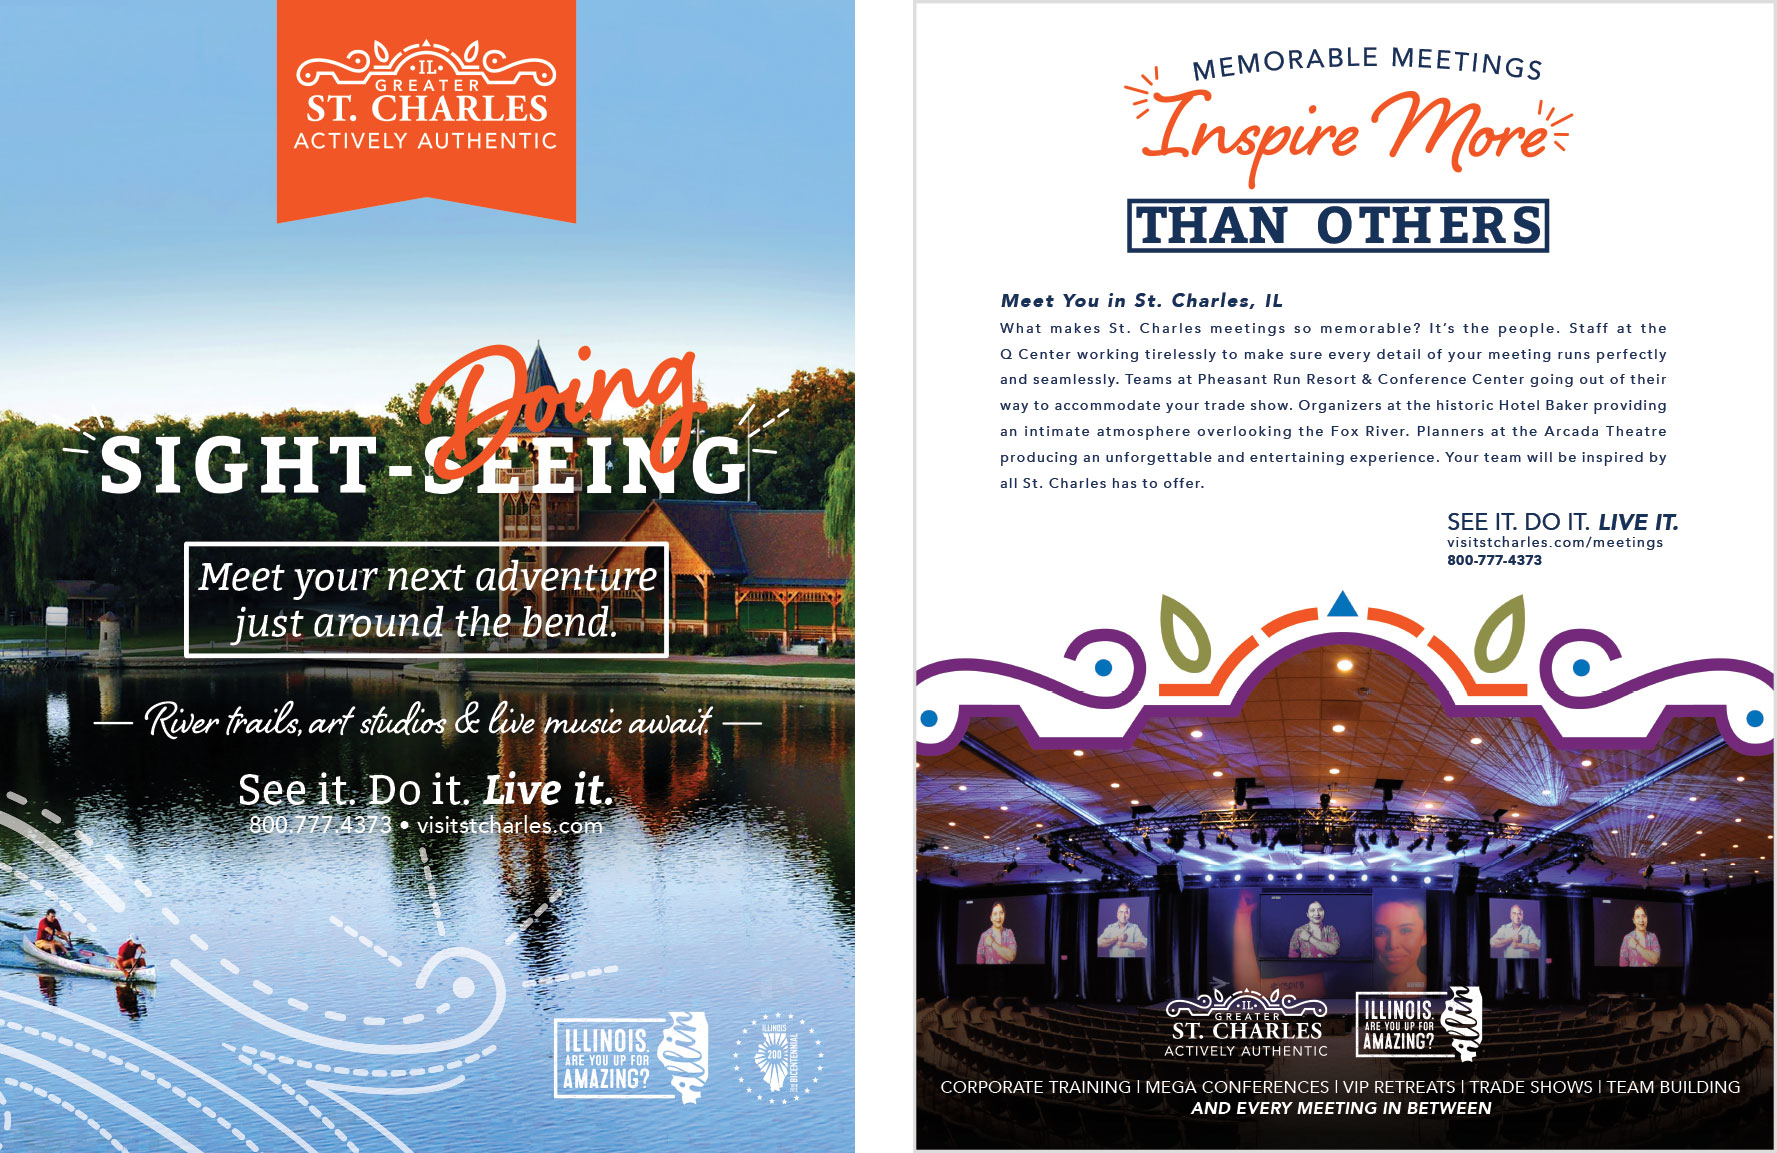 st charles il visitor guide done for st charles cvb done by mcdaniels marketing